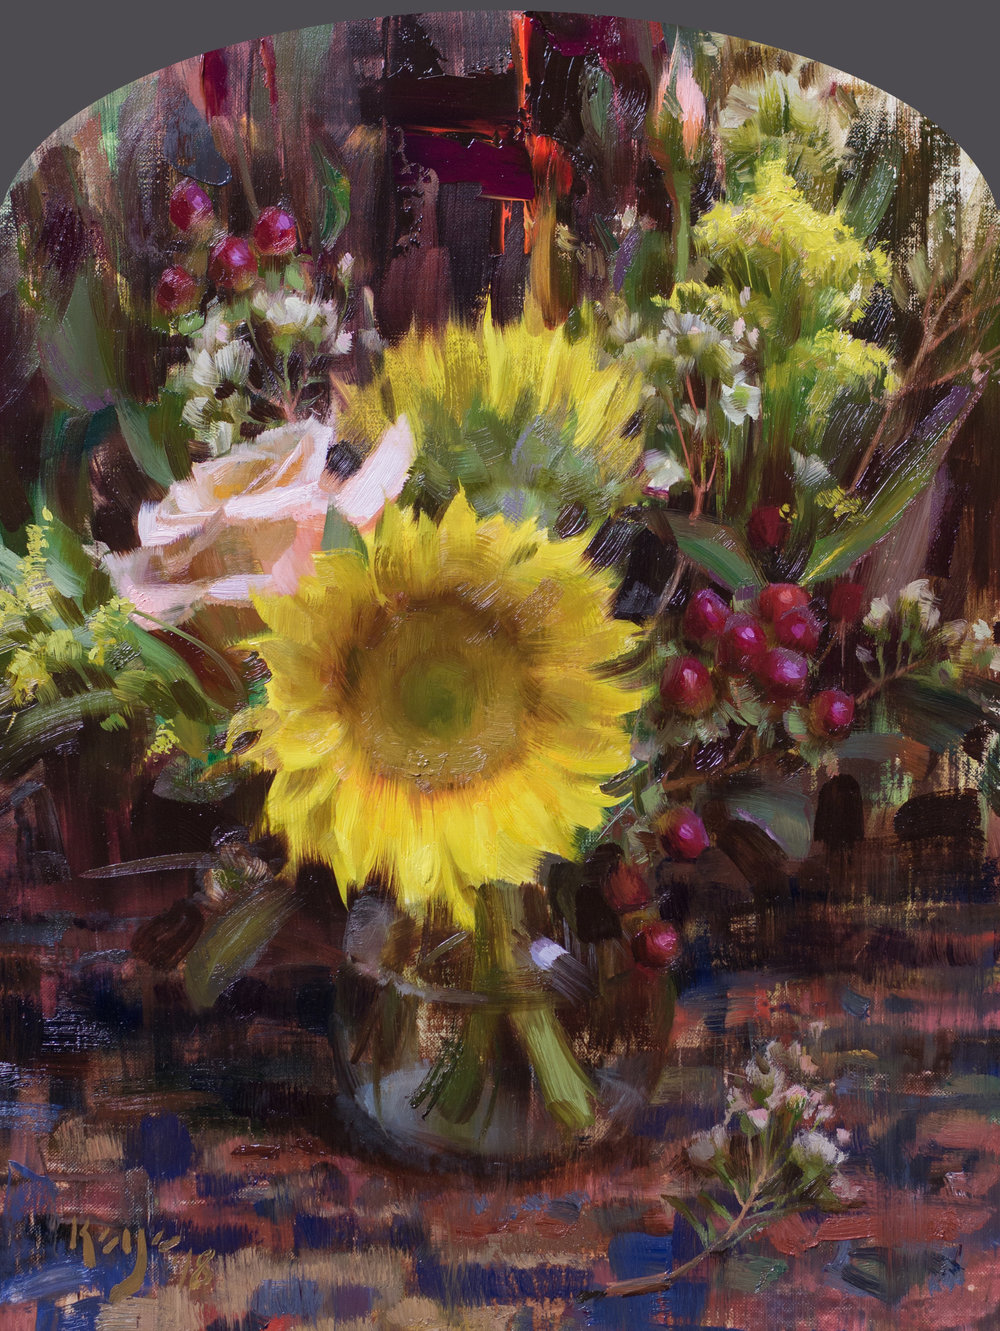 Sunflower Bouquet, 16 x 12 inches, oil on linen